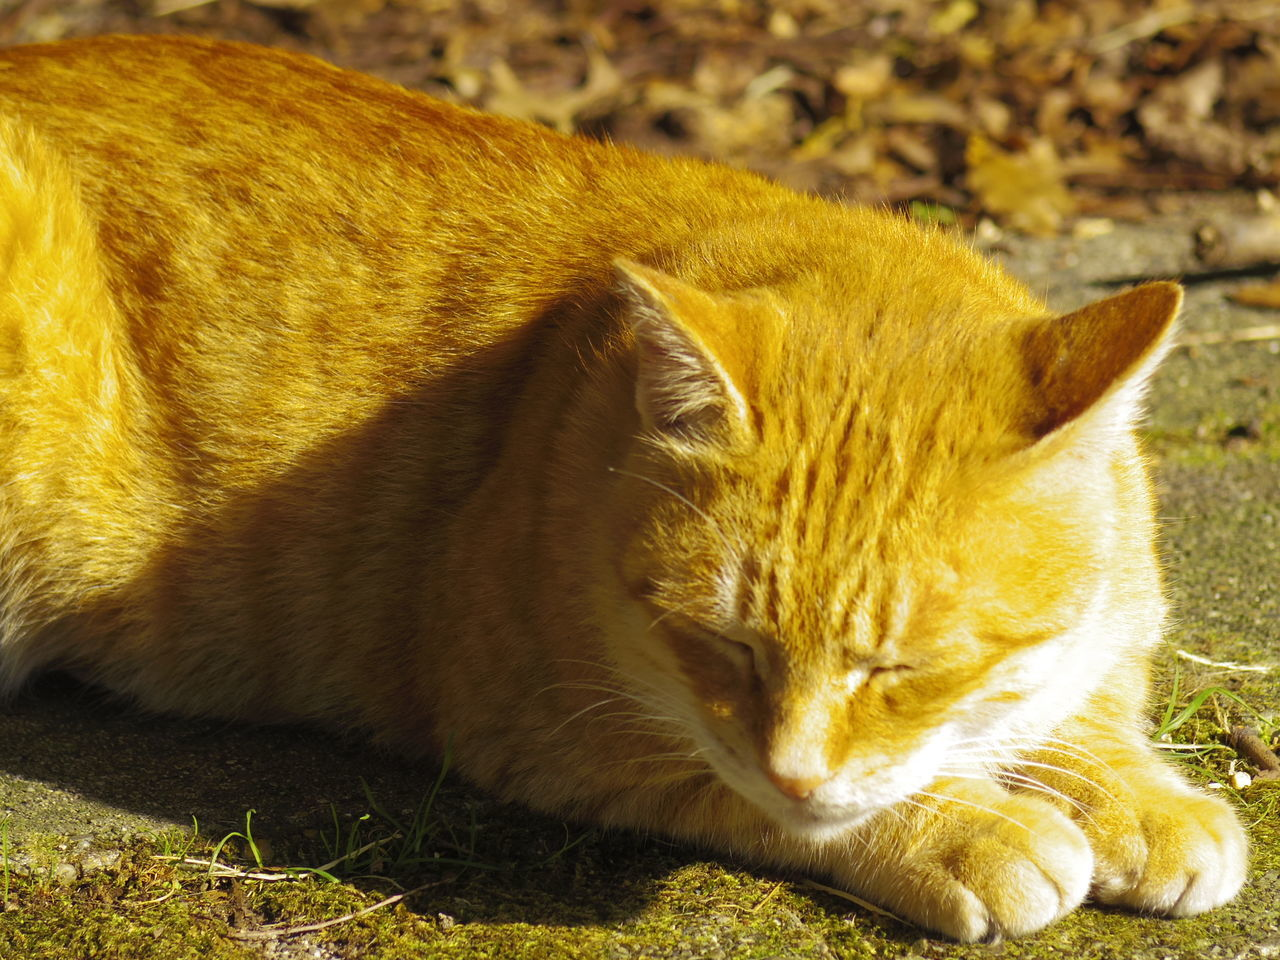 one animal, animal themes, domestic cat, mammal, domestic animals, feline, pets, no people, day, whisker, close-up, outdoors, sitting, nature